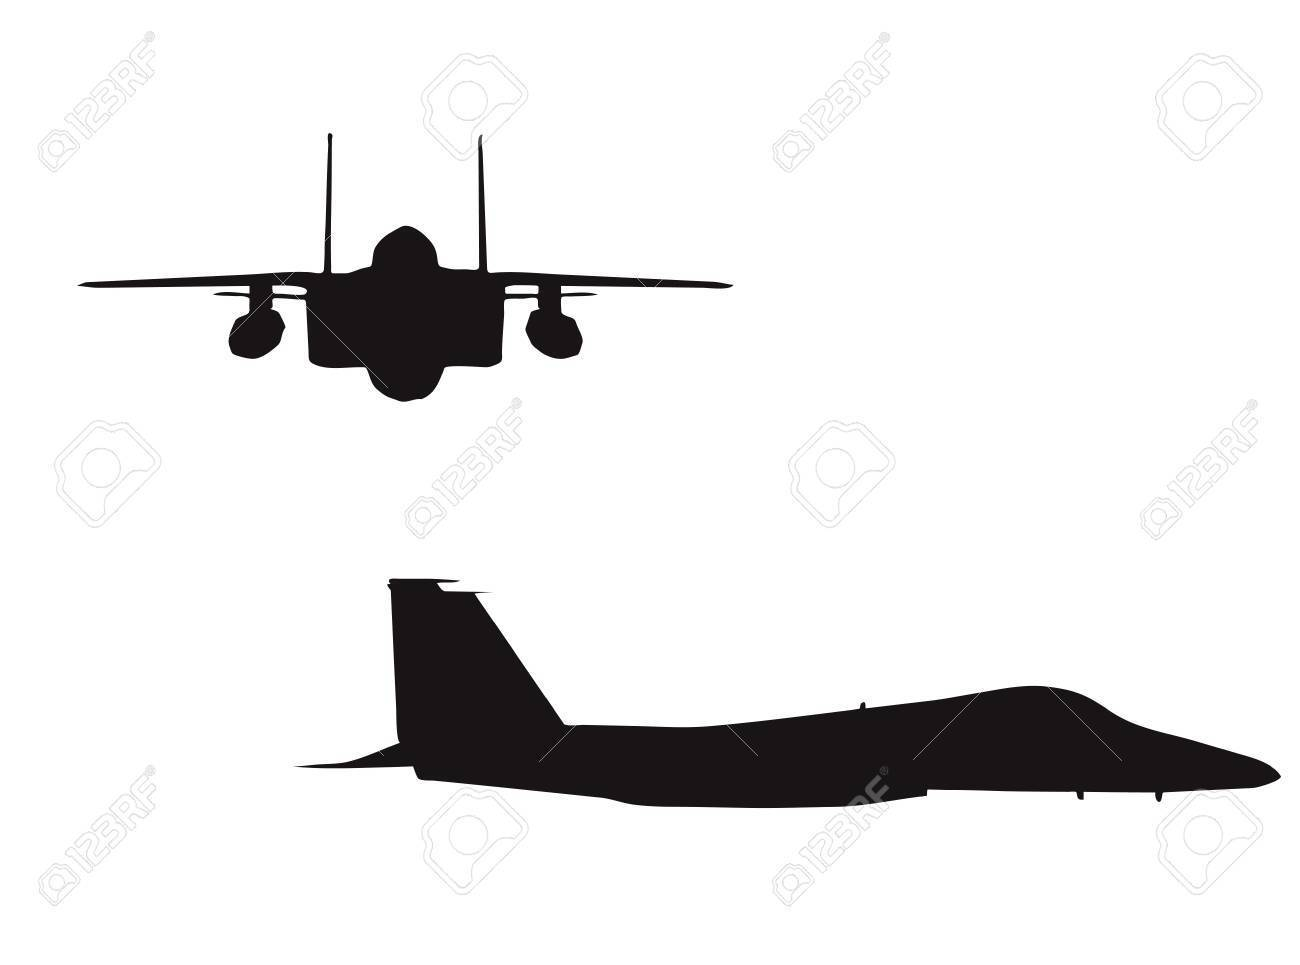 Bomber plane silhouette on white background » Clipart Portal.